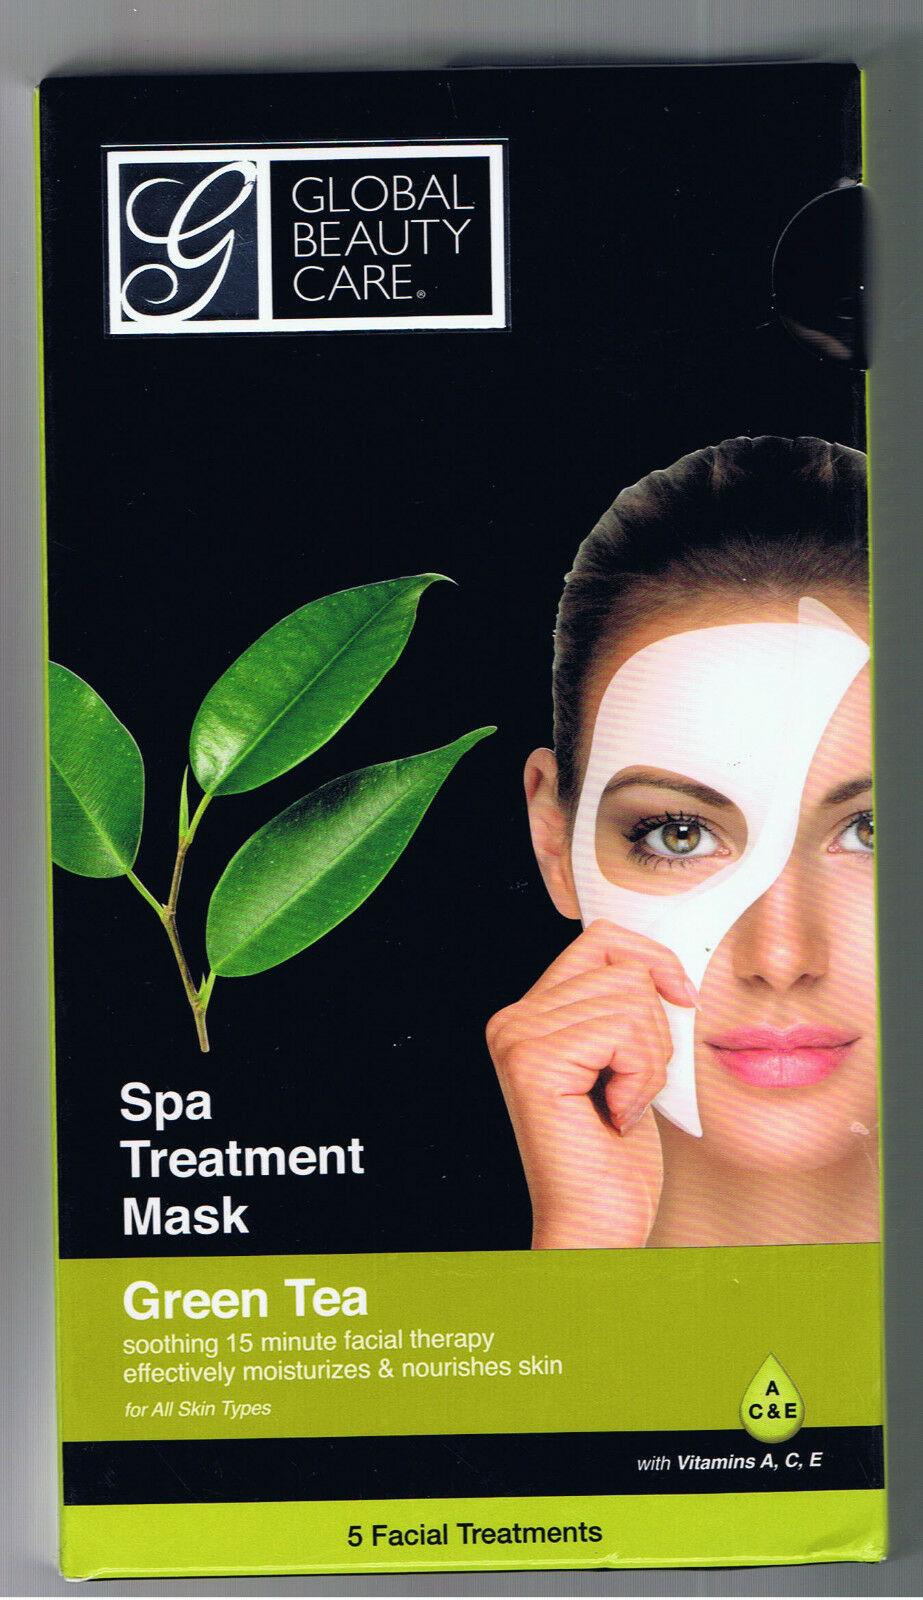 Impossible facial hand spa treatment not deceived